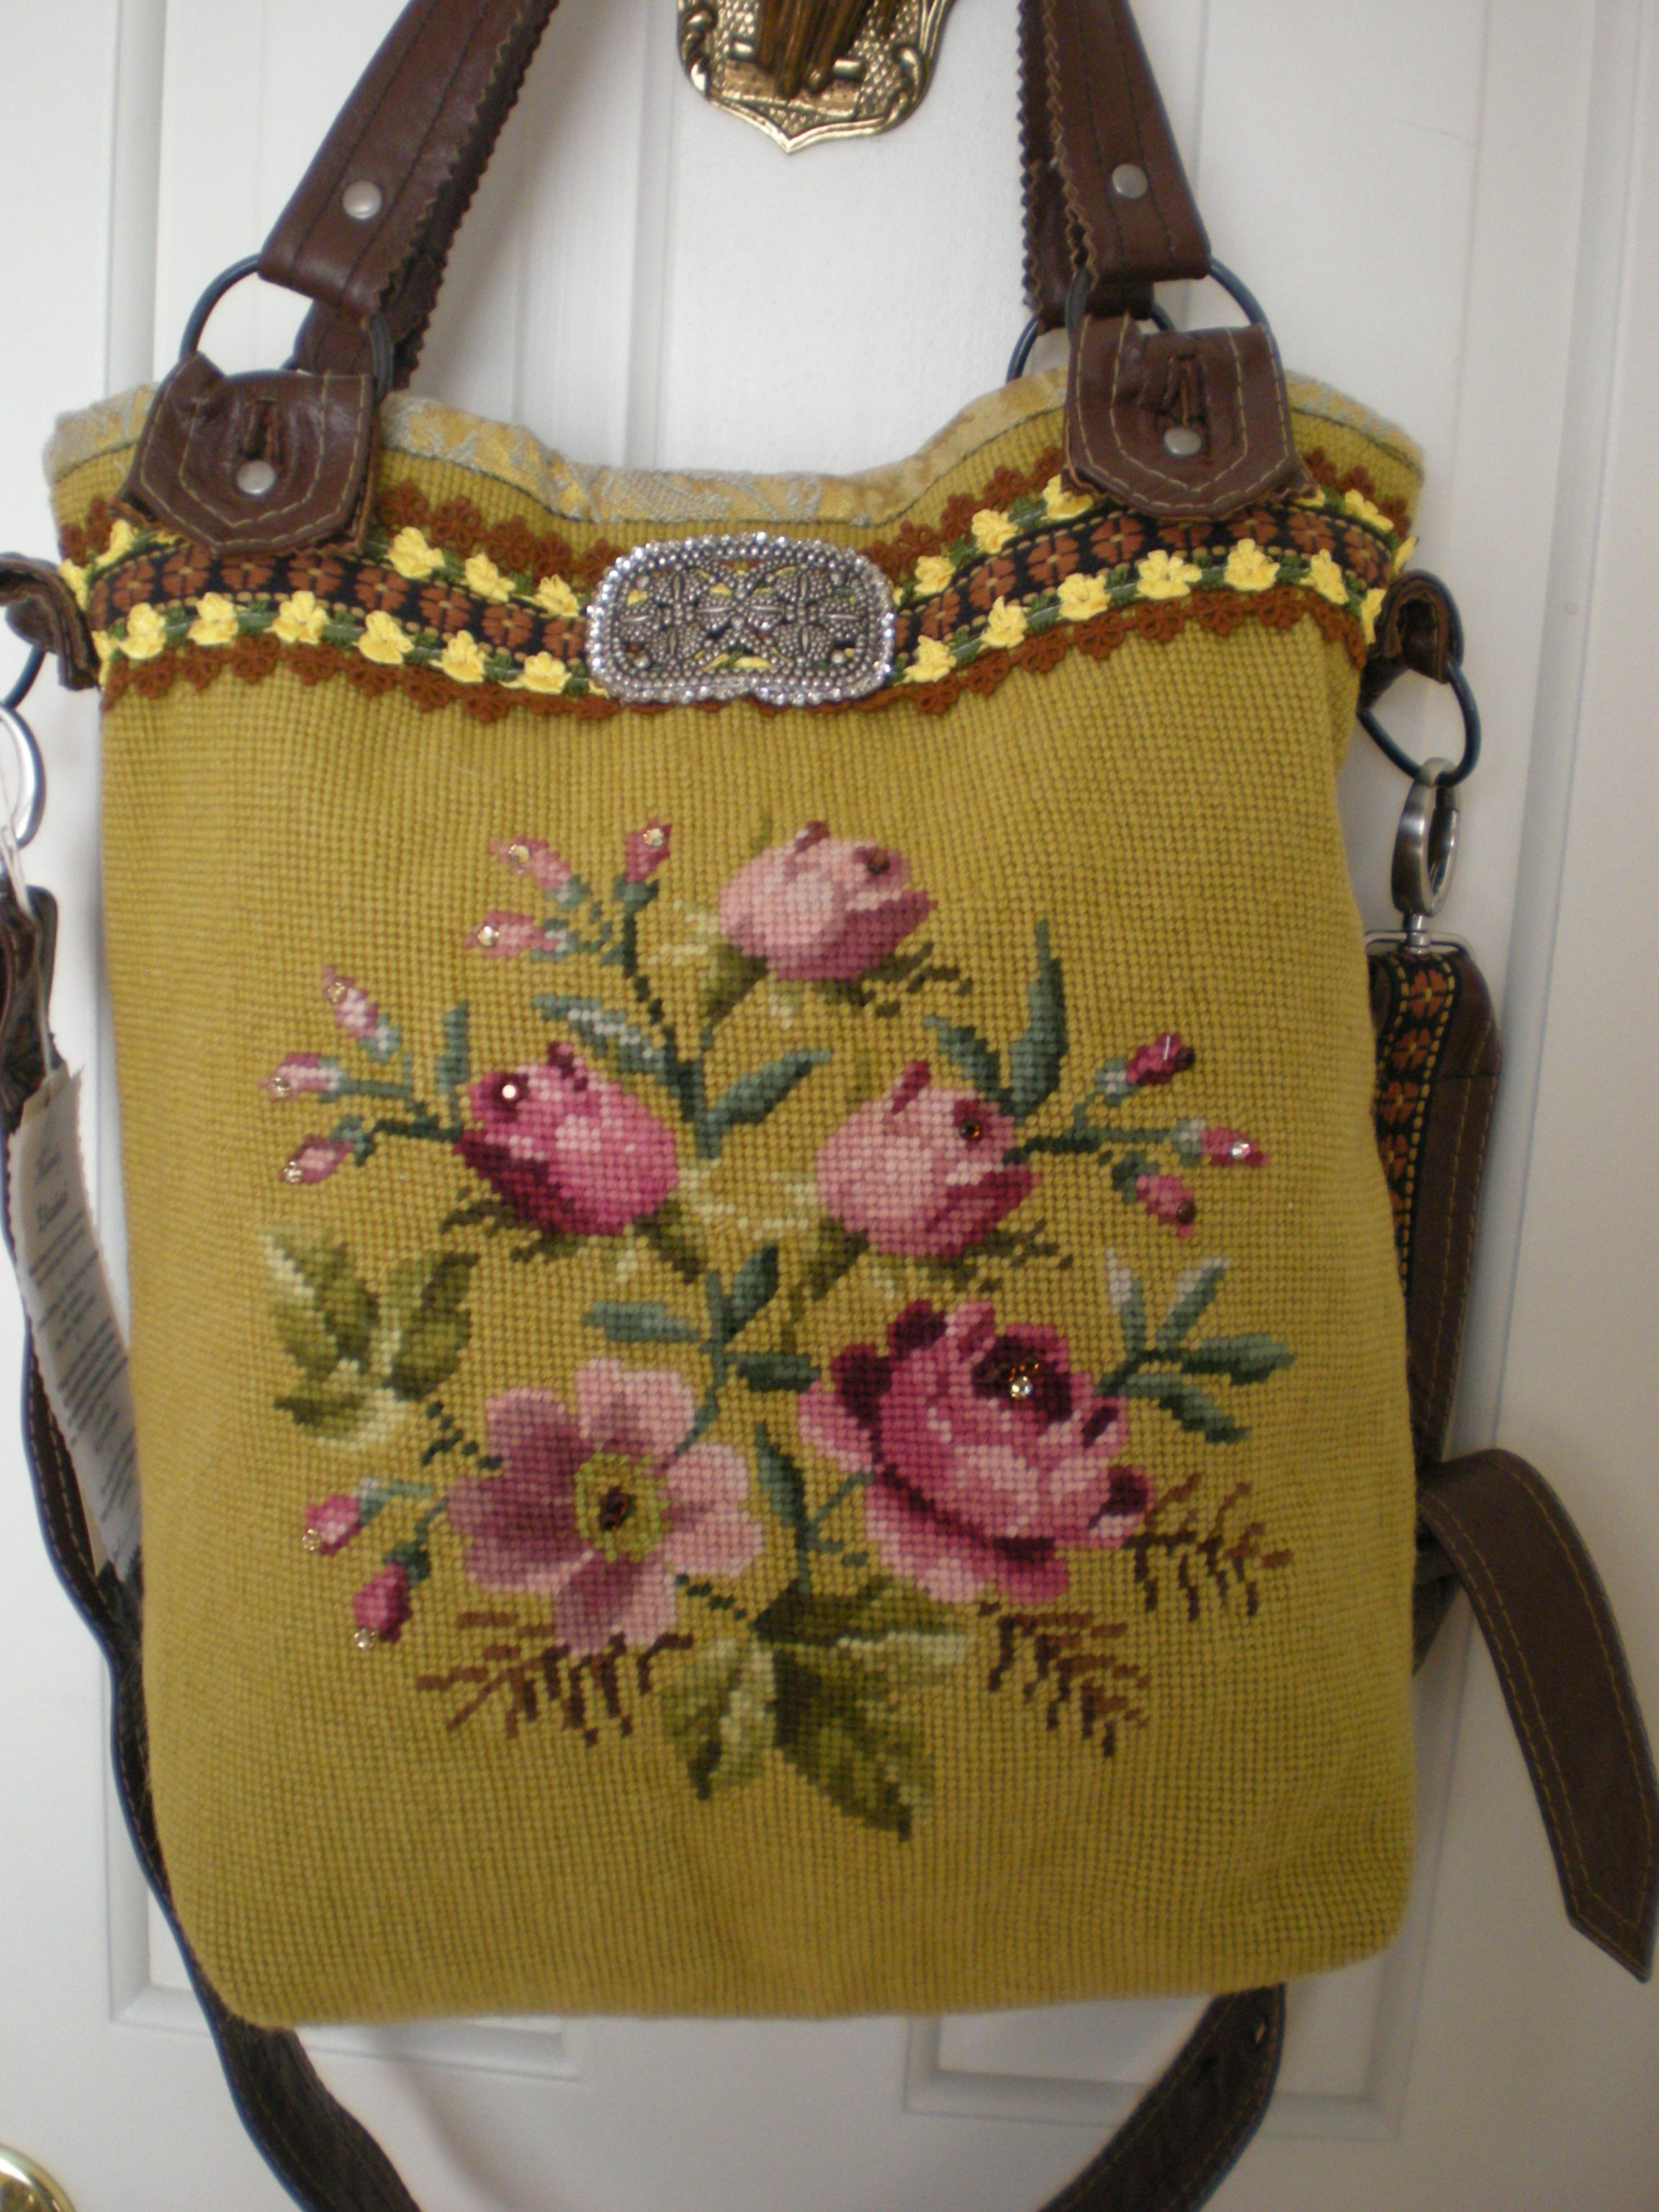 Needlepoint Bag Like The Leather Finishing Uses A Piece Of Vintage